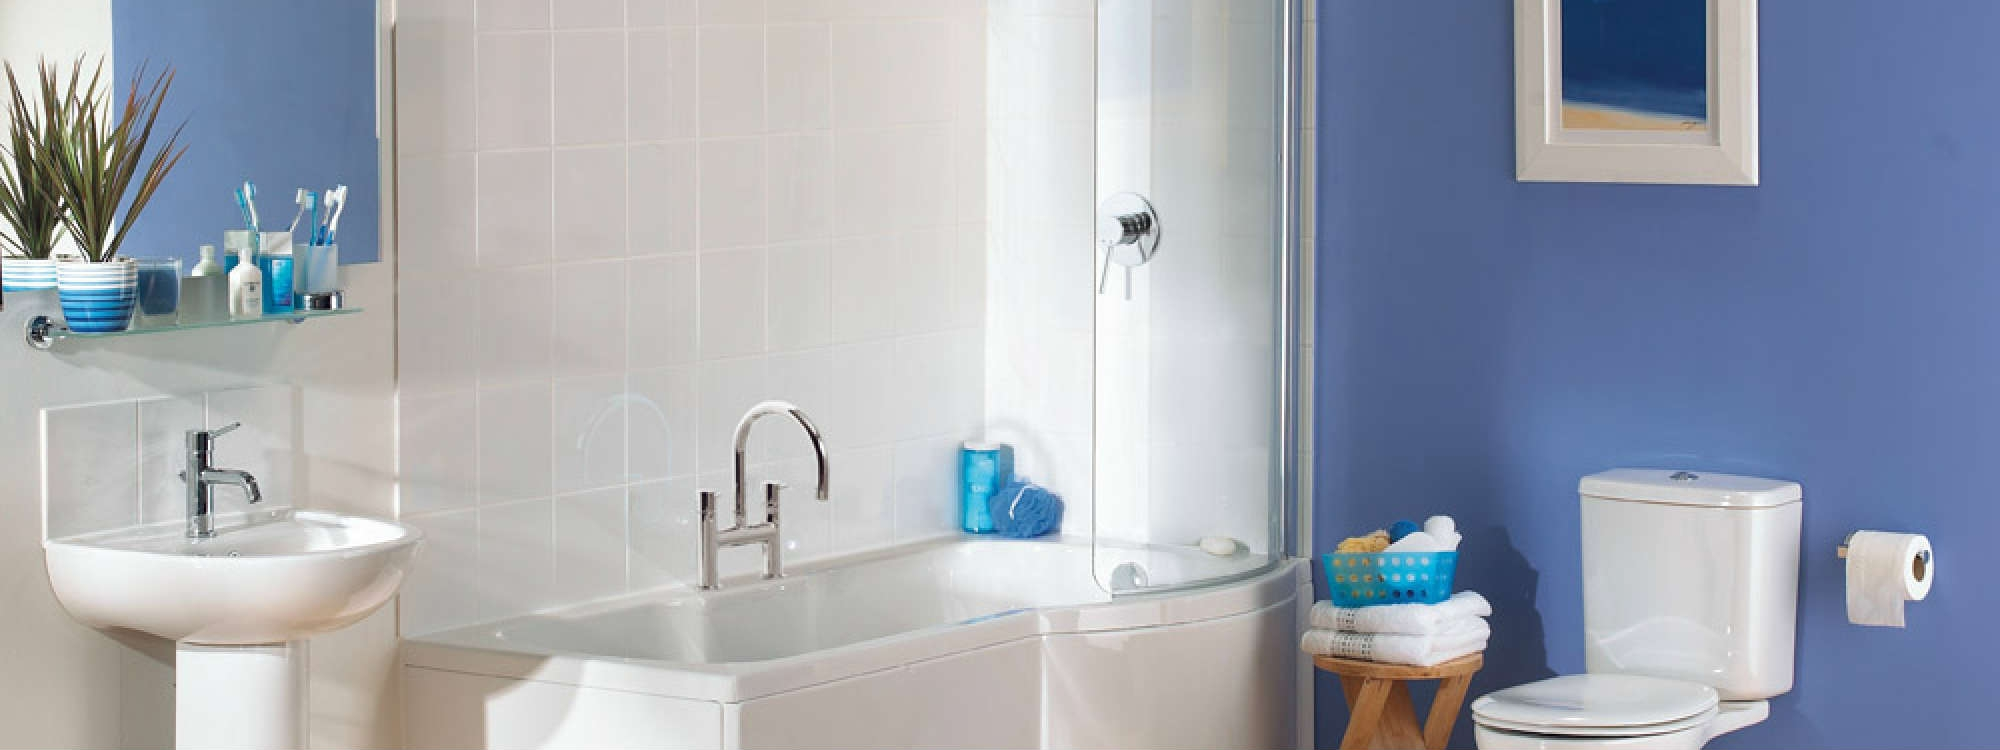 Functional family bathroom designs at more bathrooms leeds for Bathroom design leeds